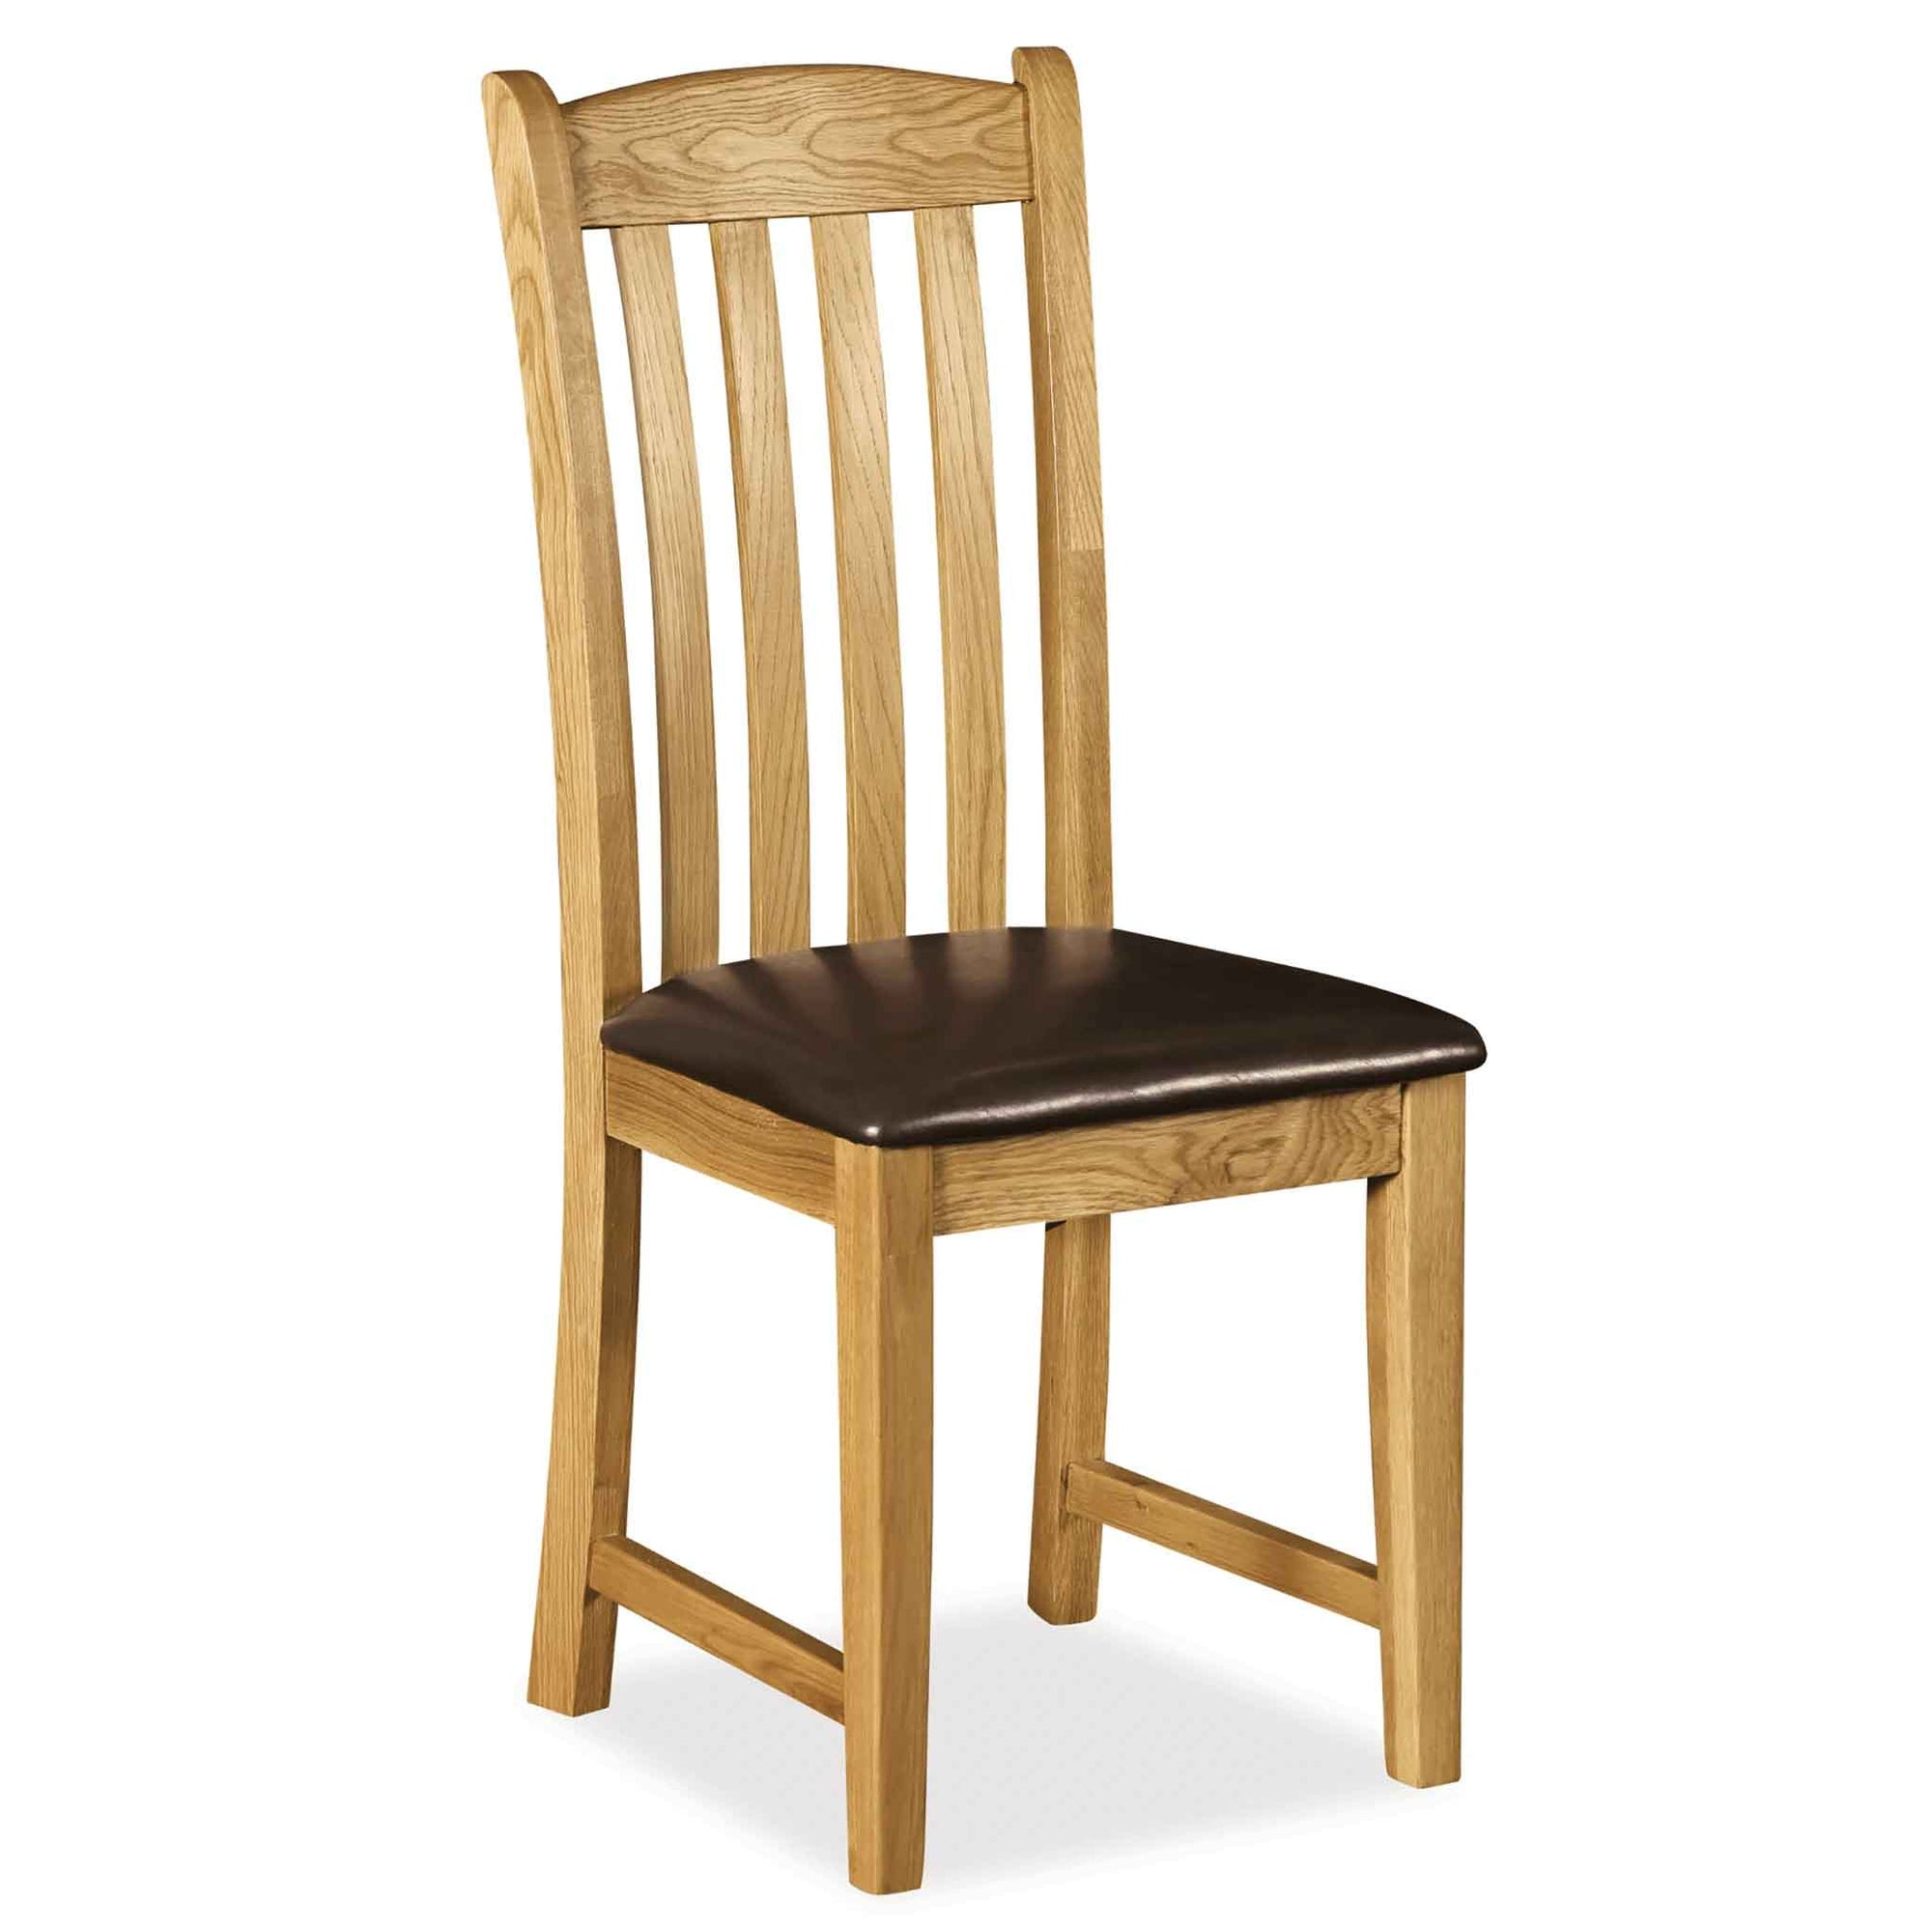 Zelah Oak Slatted Back Dining Chair by Roseland Furniture